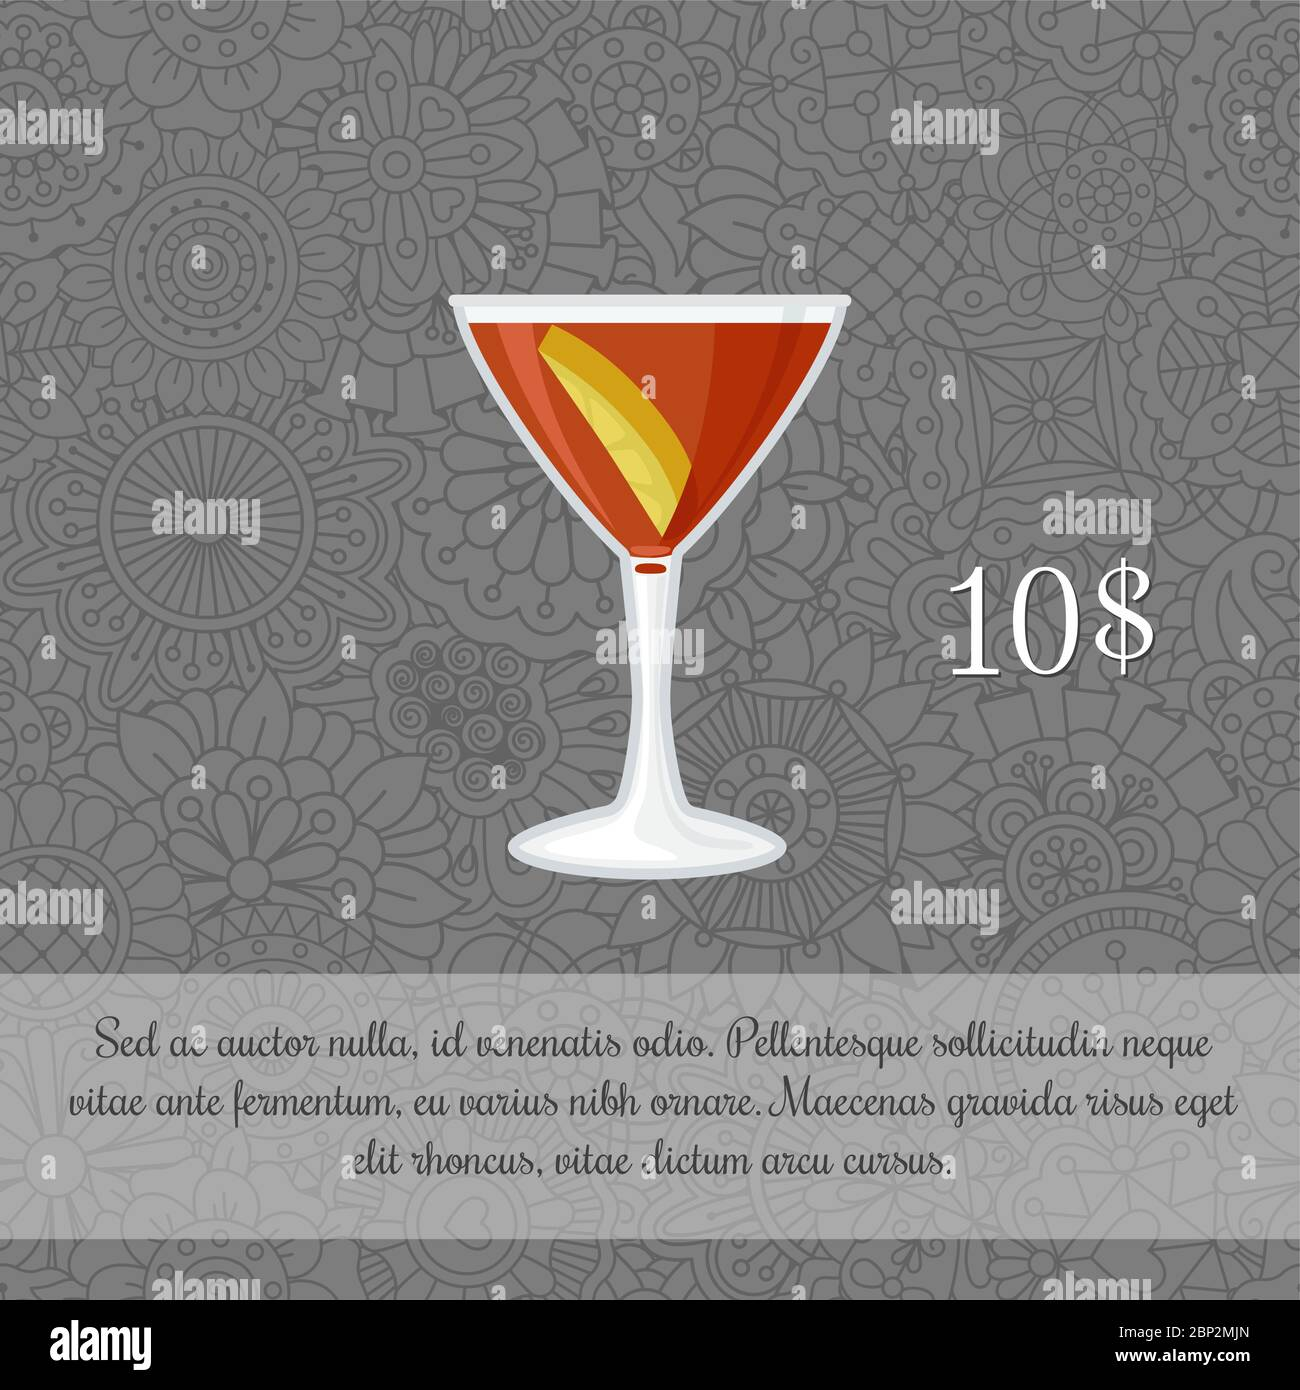 Alcoholic Manhattan Cocktail Card Template With Price And Patterned Background Vector Illustration Stock Vector Image Art Alamy